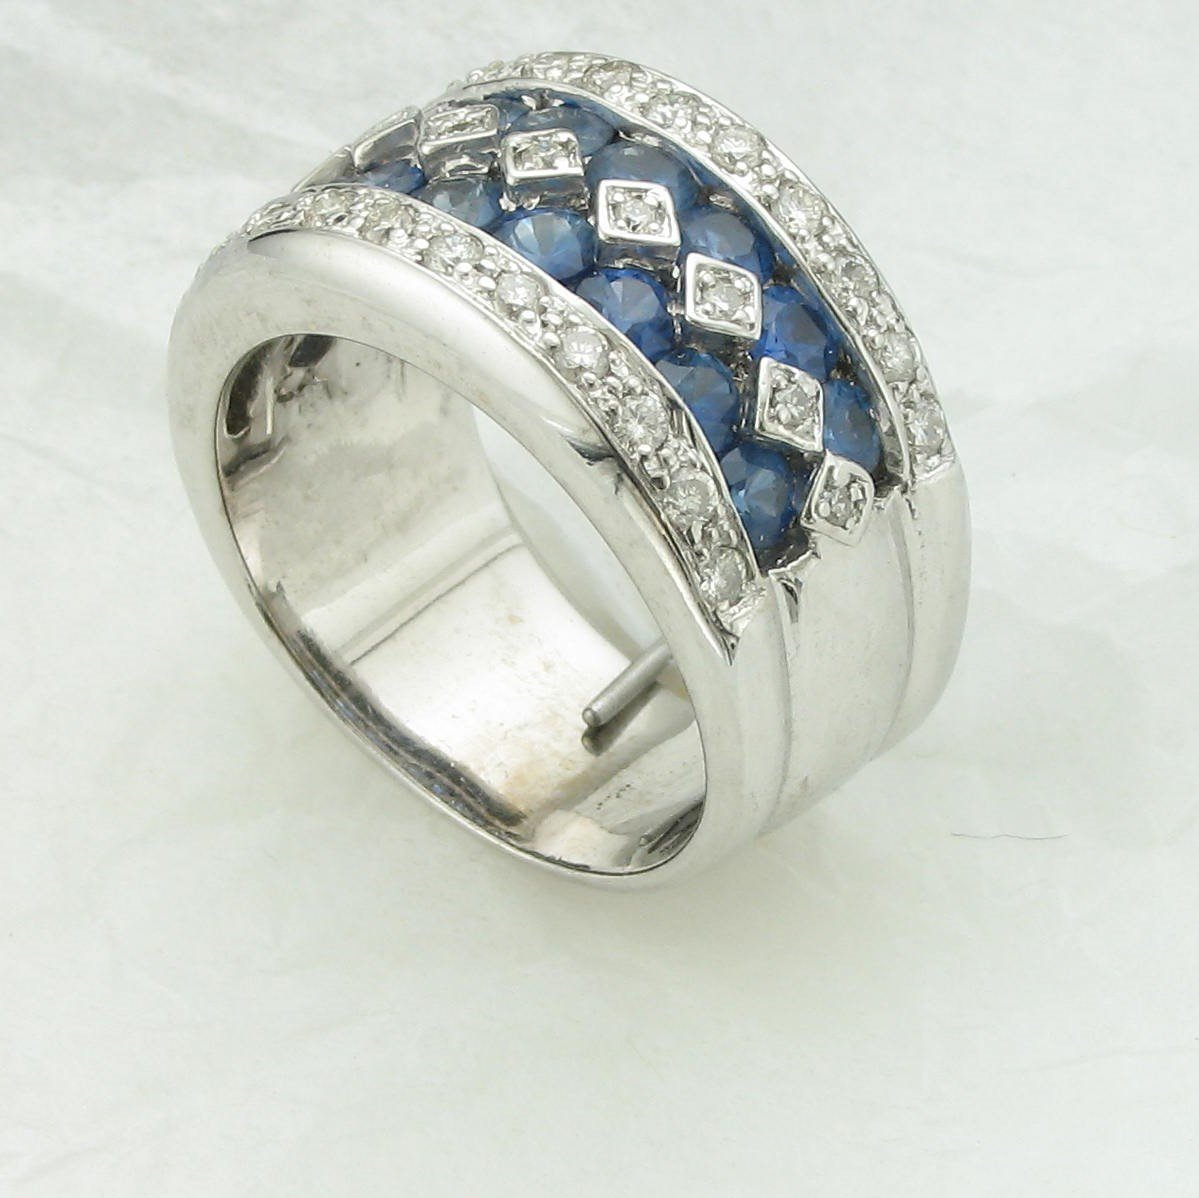 0.75tcw Blue Sapphire/0.25 tcw Diamonds Ring set in 14K White Gold